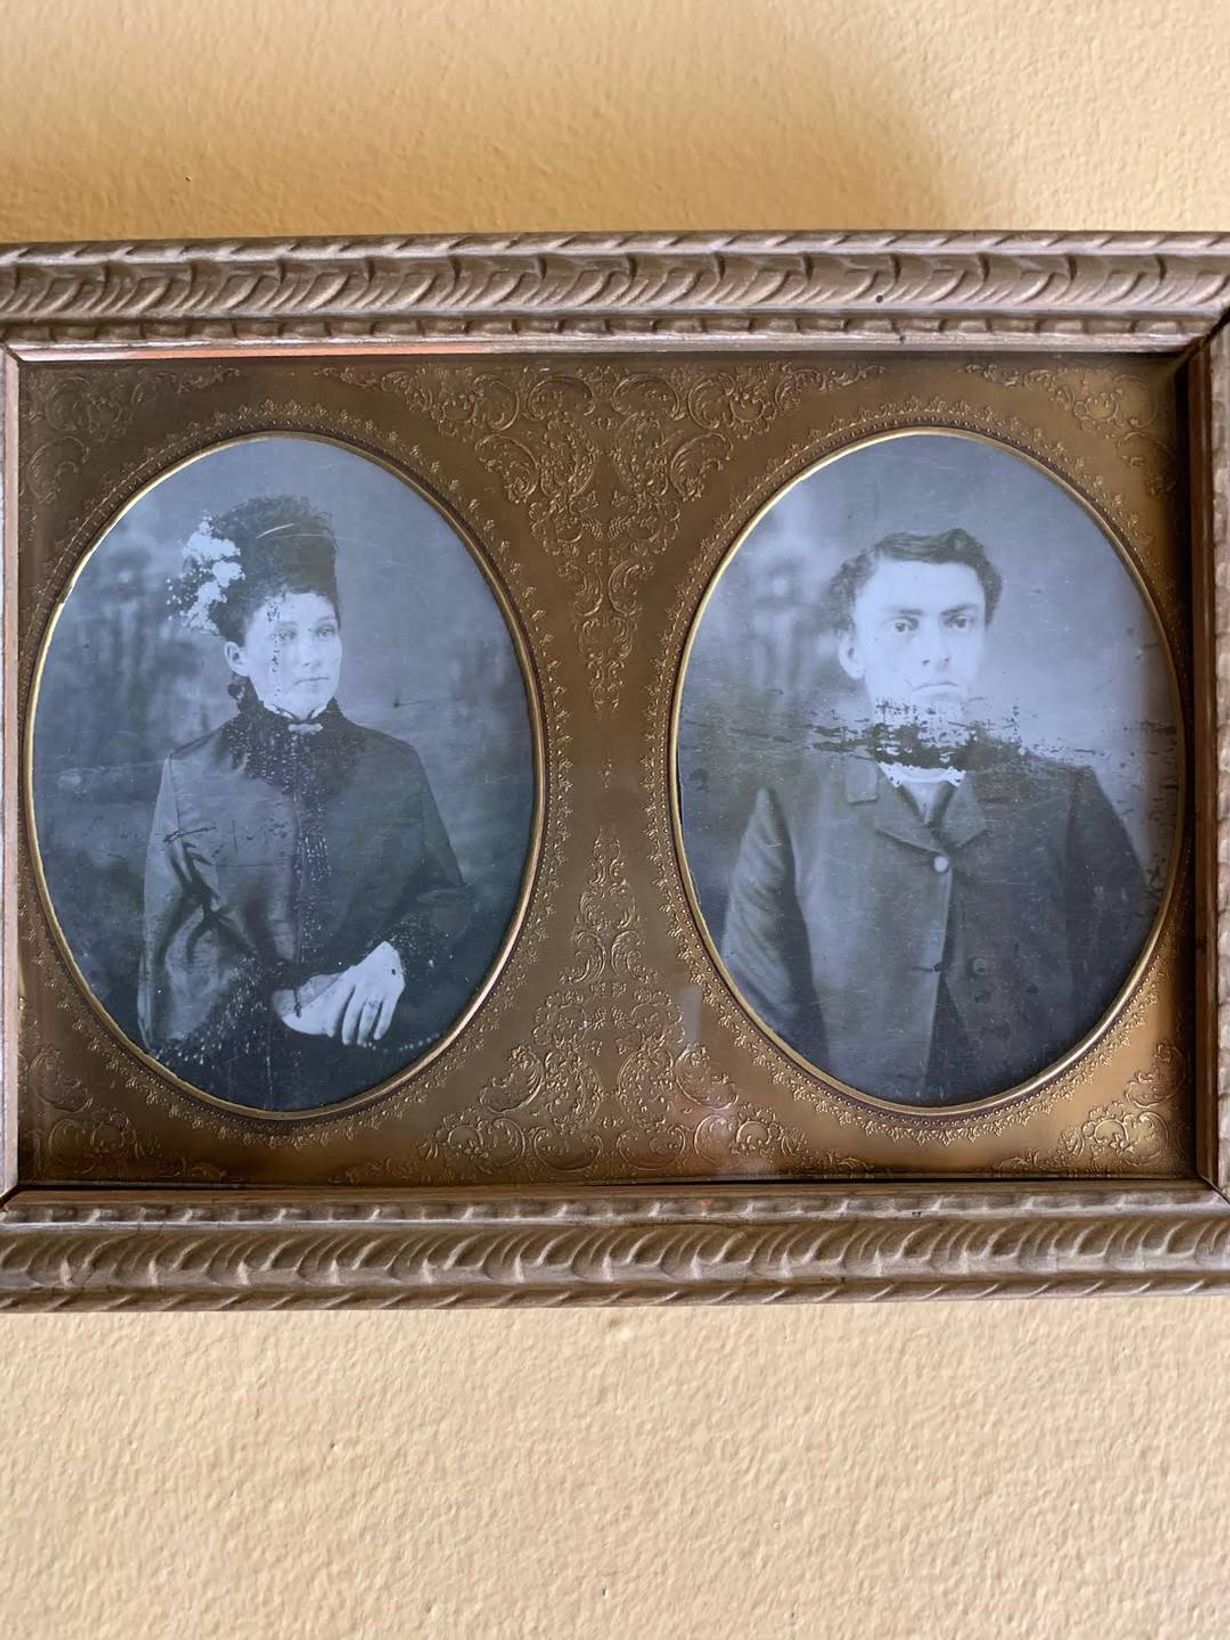 Old photograph of man and woman dressed in bronze picture frame